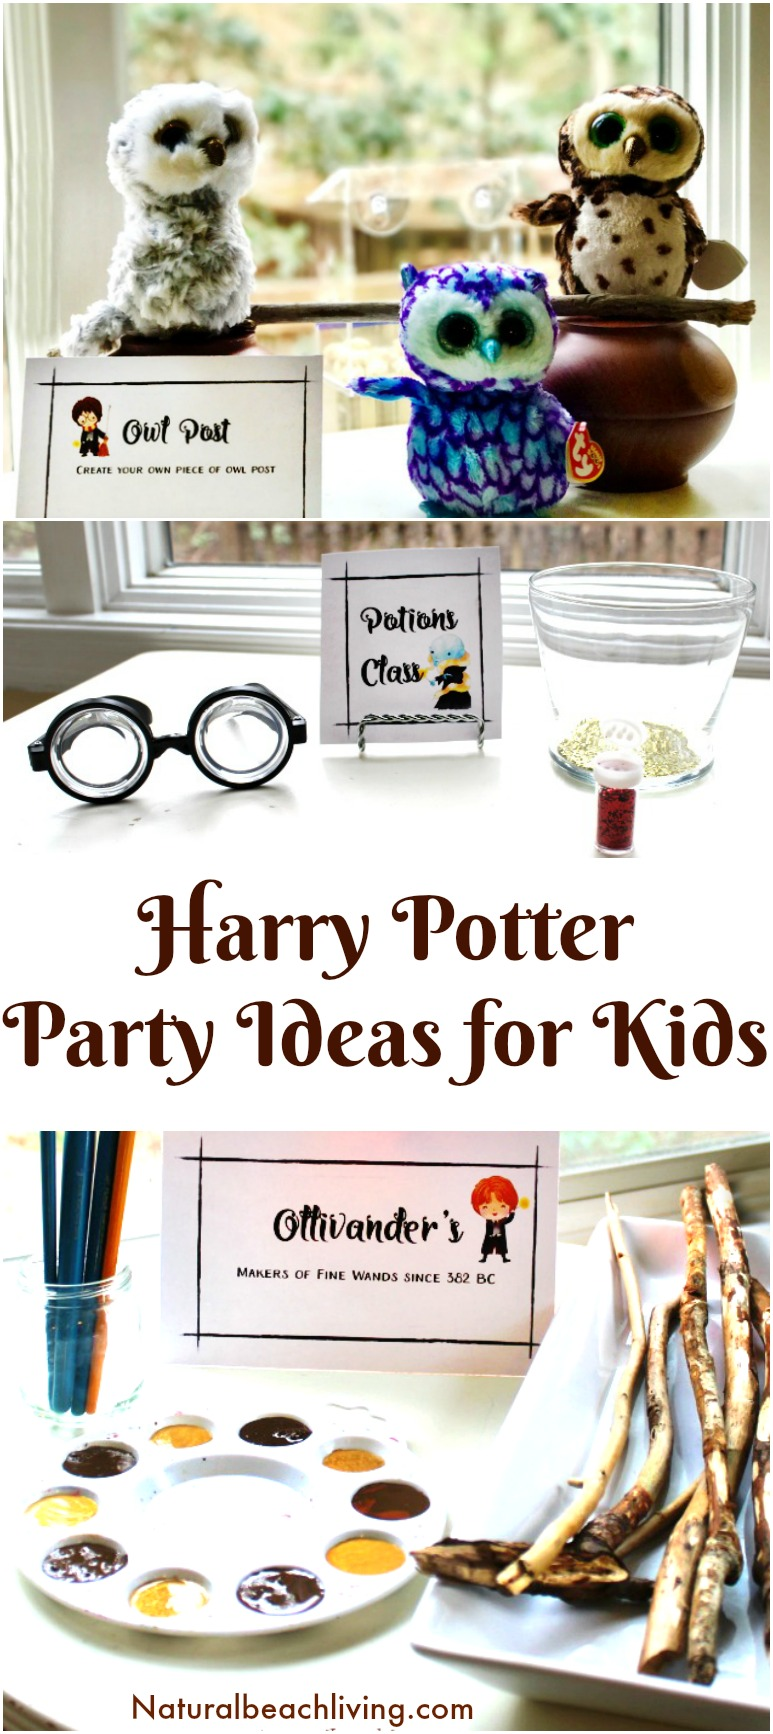 Harry Potter, 20+ The Best Mermaid Theme Party Ideas, Under the Sea themed Ideas, Ocean Themed activities, Party food, Mermaid Crafts for Kids, Sensory play, Kids Parties